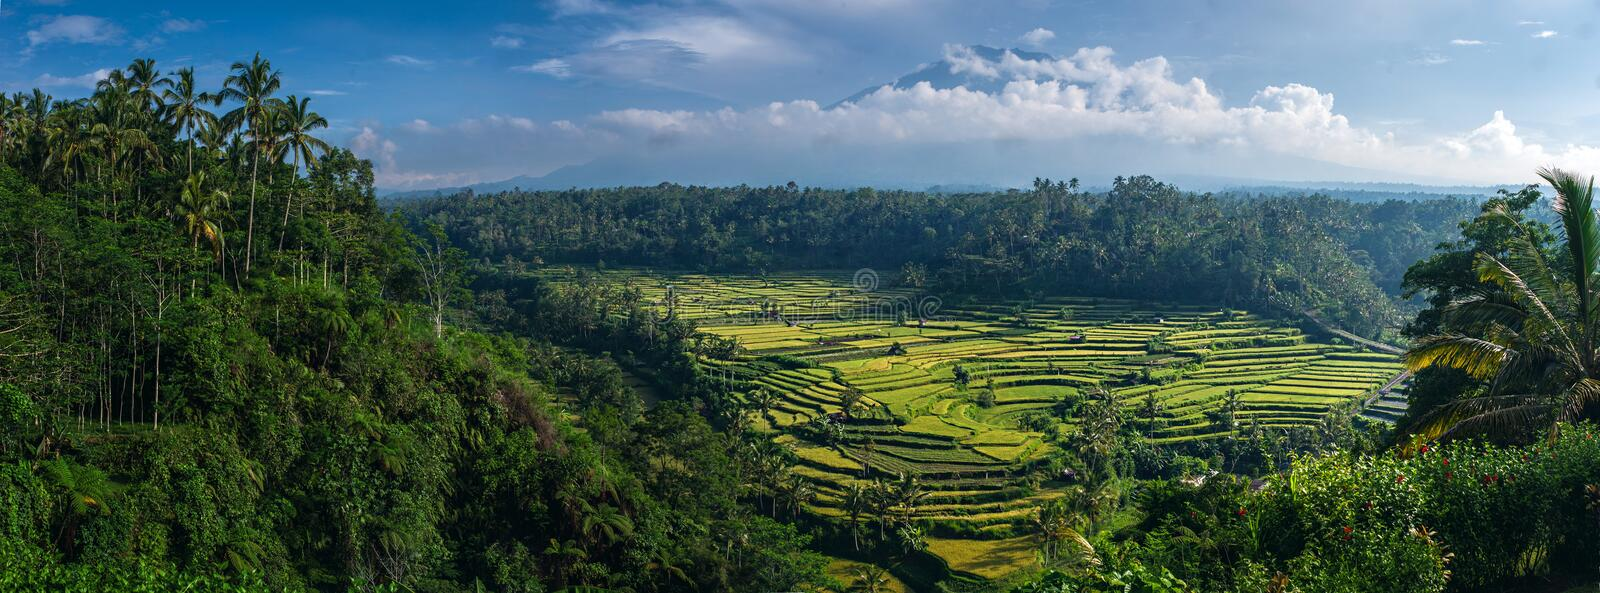 Balinese landscape with rice terraces stock photo